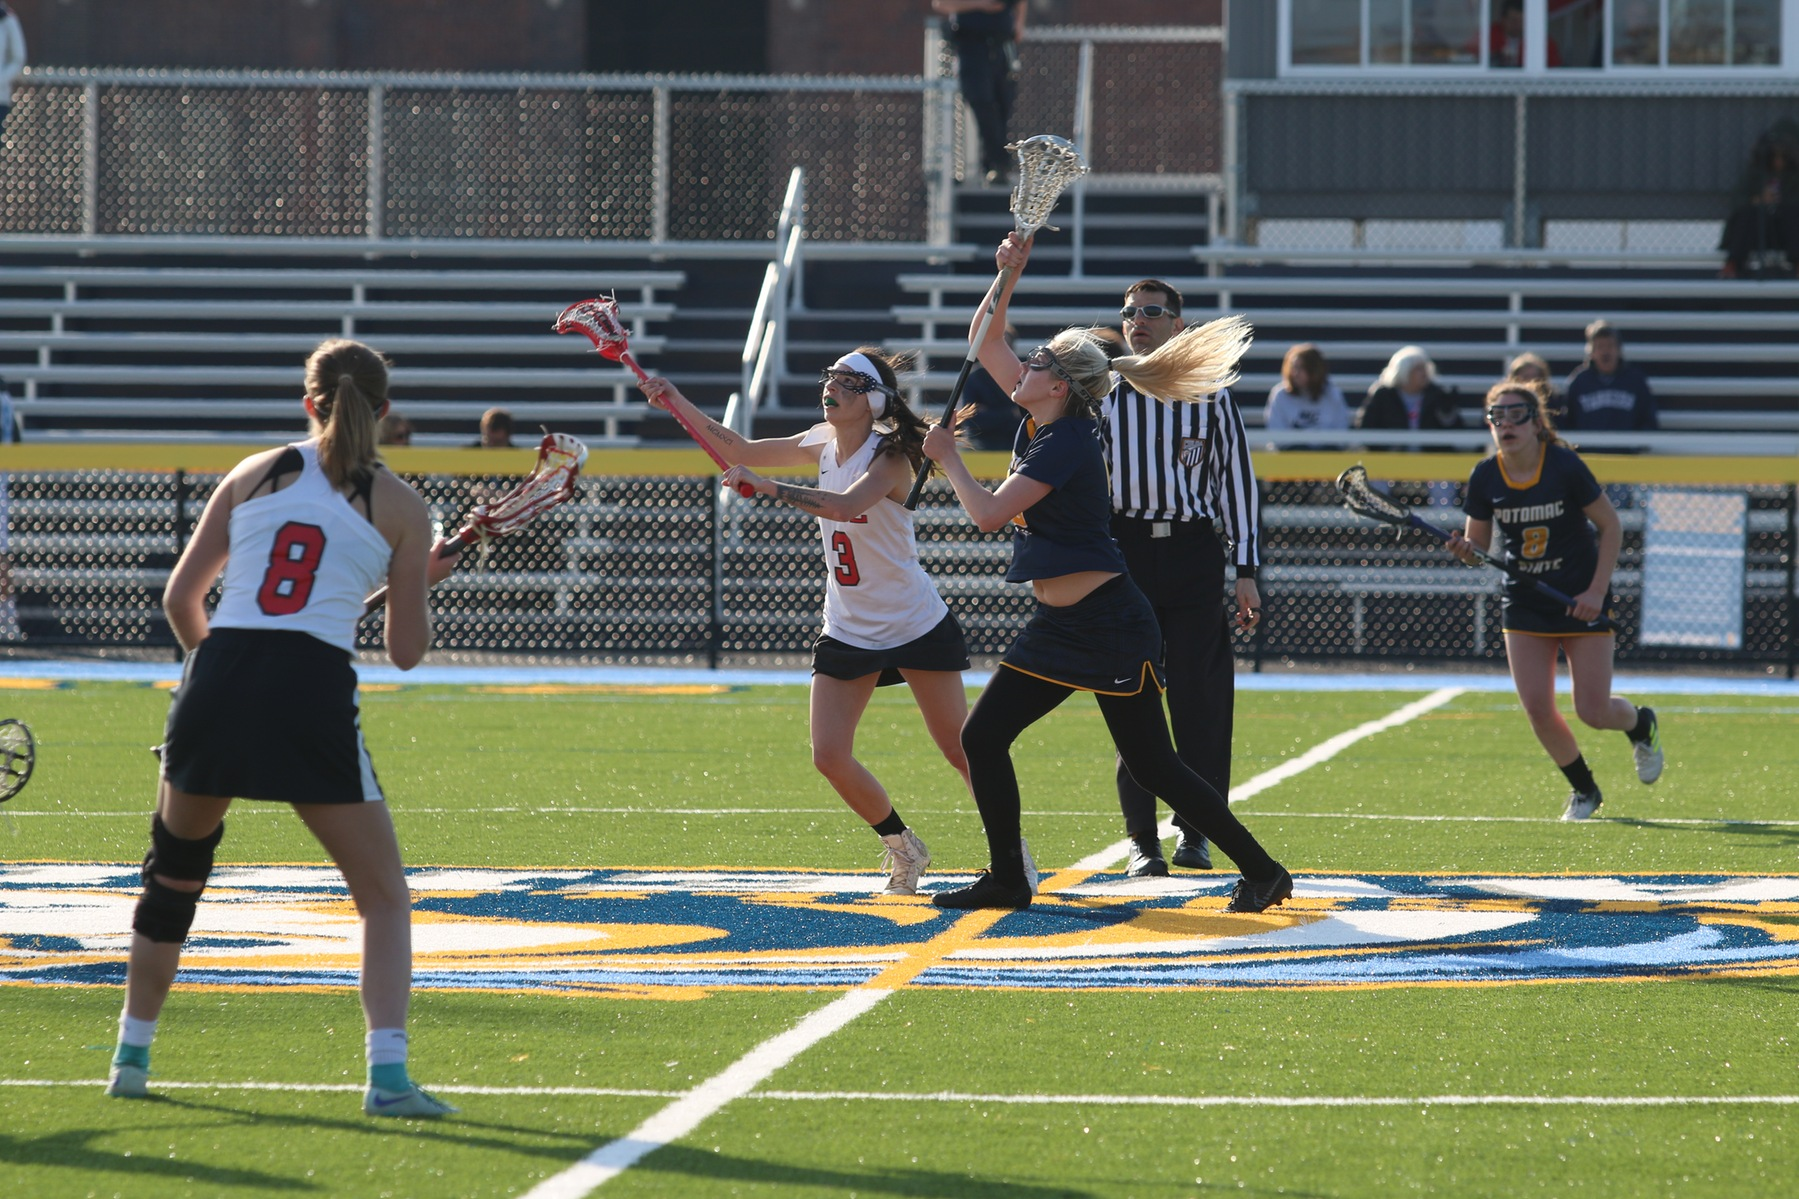 Women's Lacrosse Wins Pair of Games Over North Country Community College